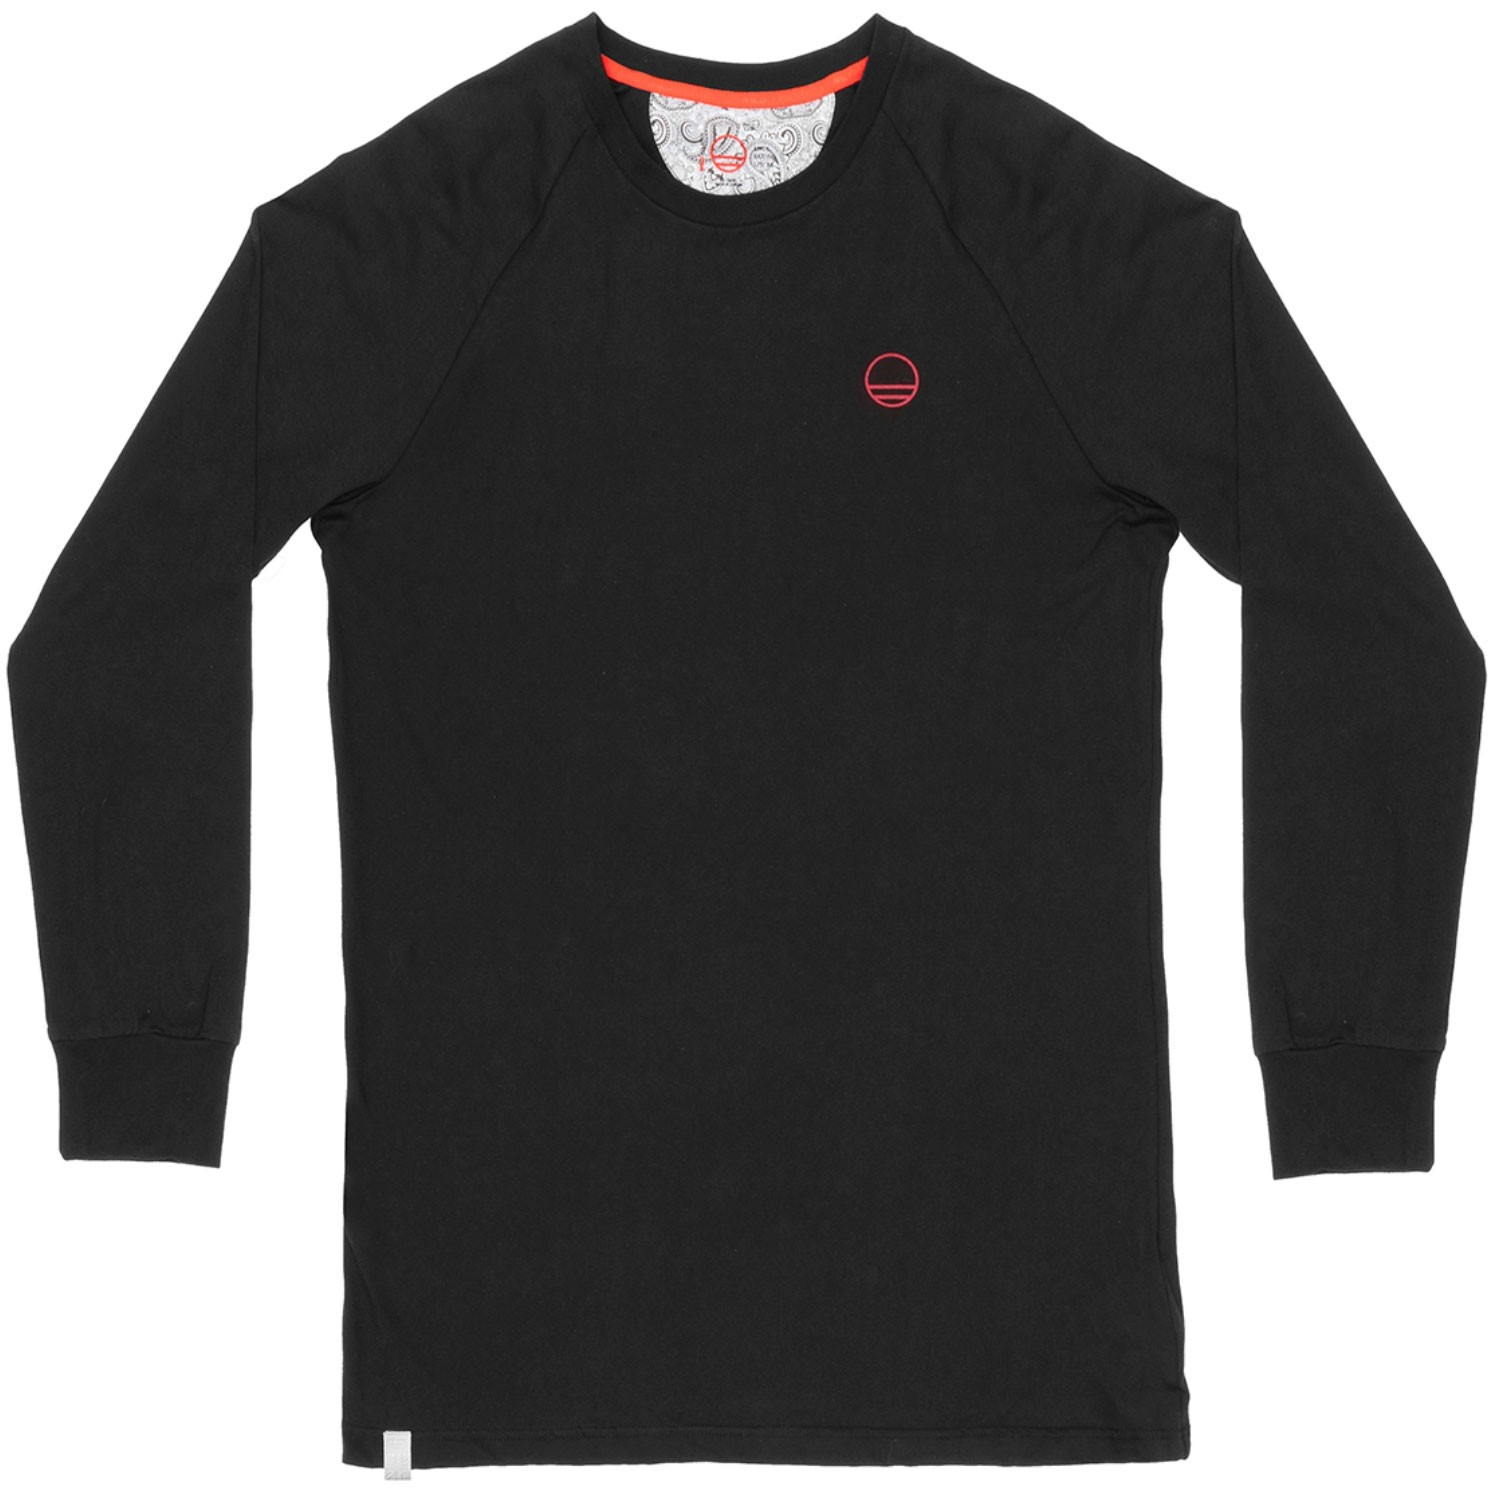 Wild Country Stanage Long Sleeve Tee - Black Out